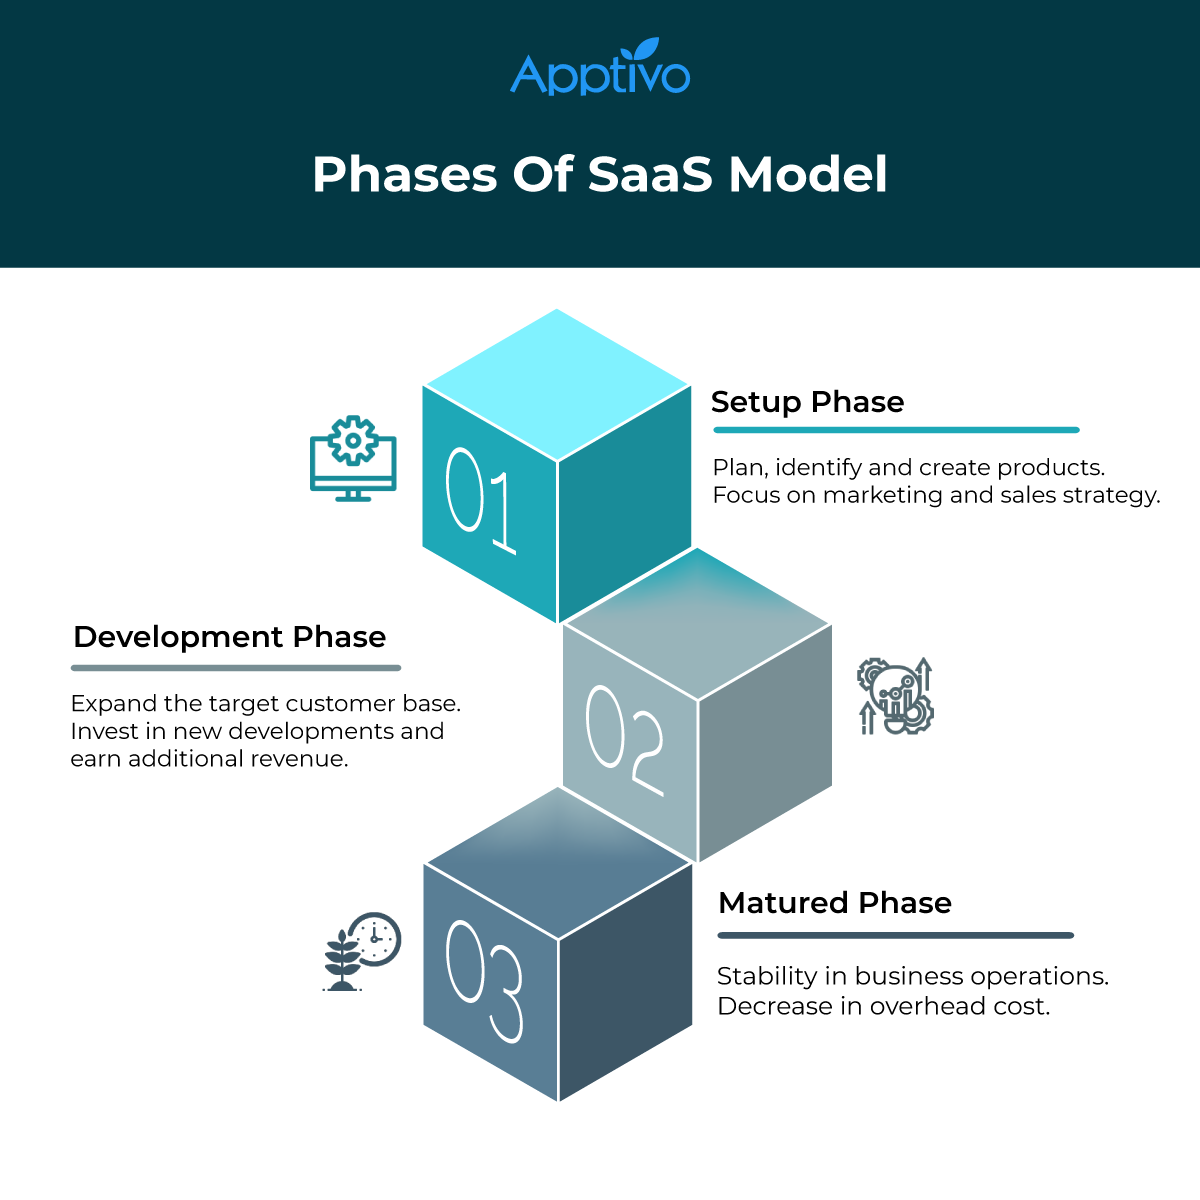 Most important aspects of SaaS